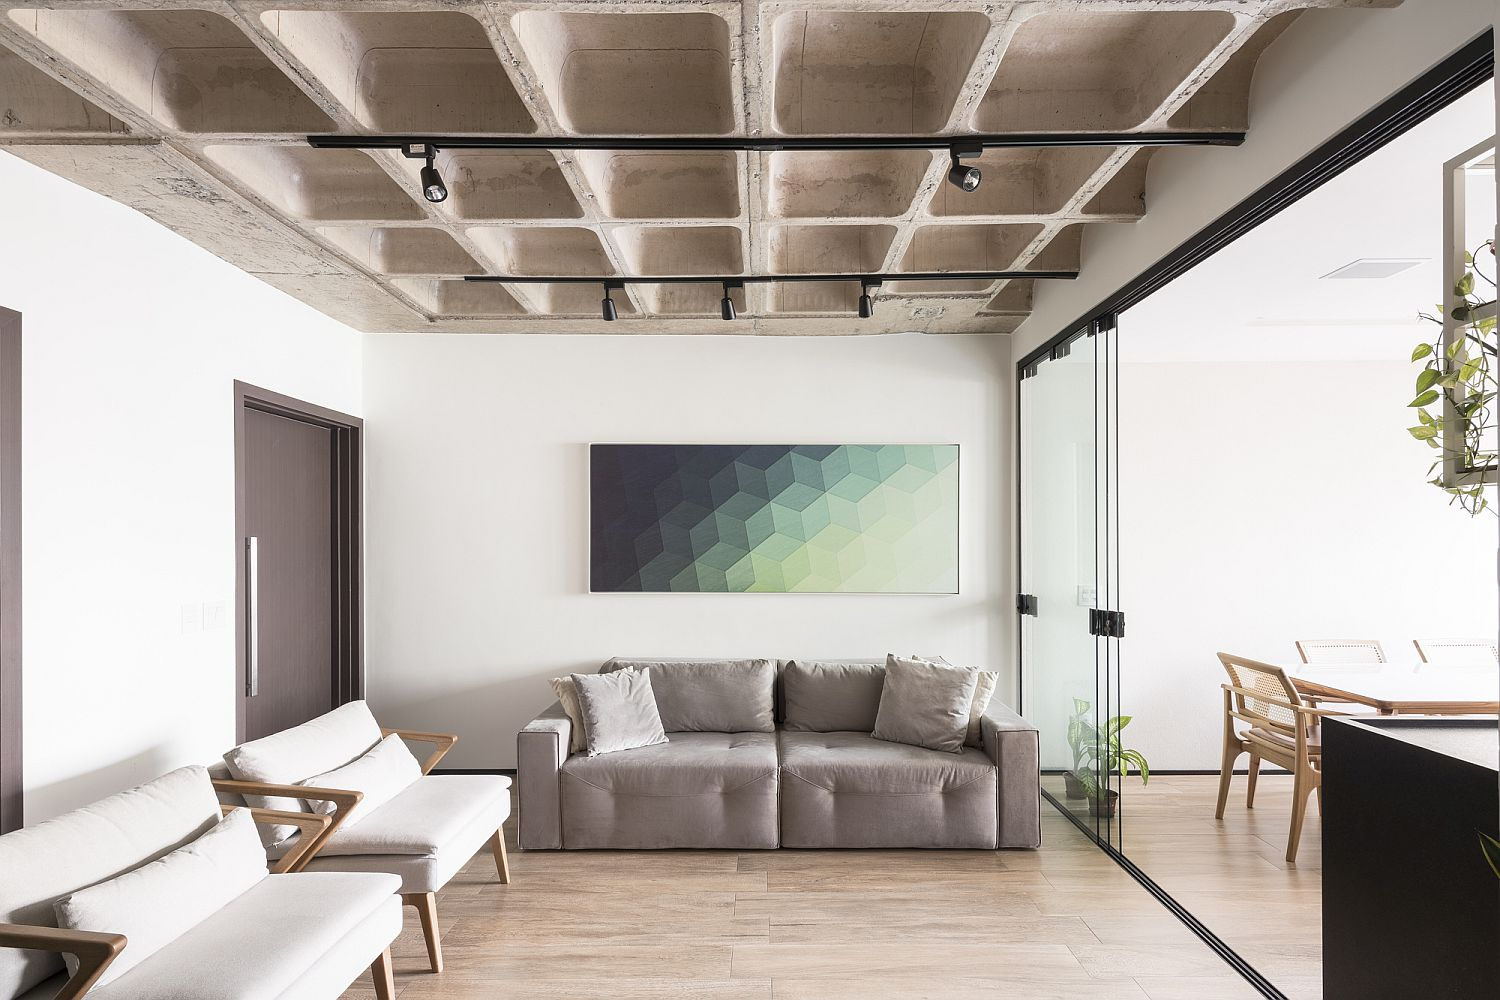 Dashing-wall-art-piece-brings-color-to-the-living-space-in-white-and-concrete